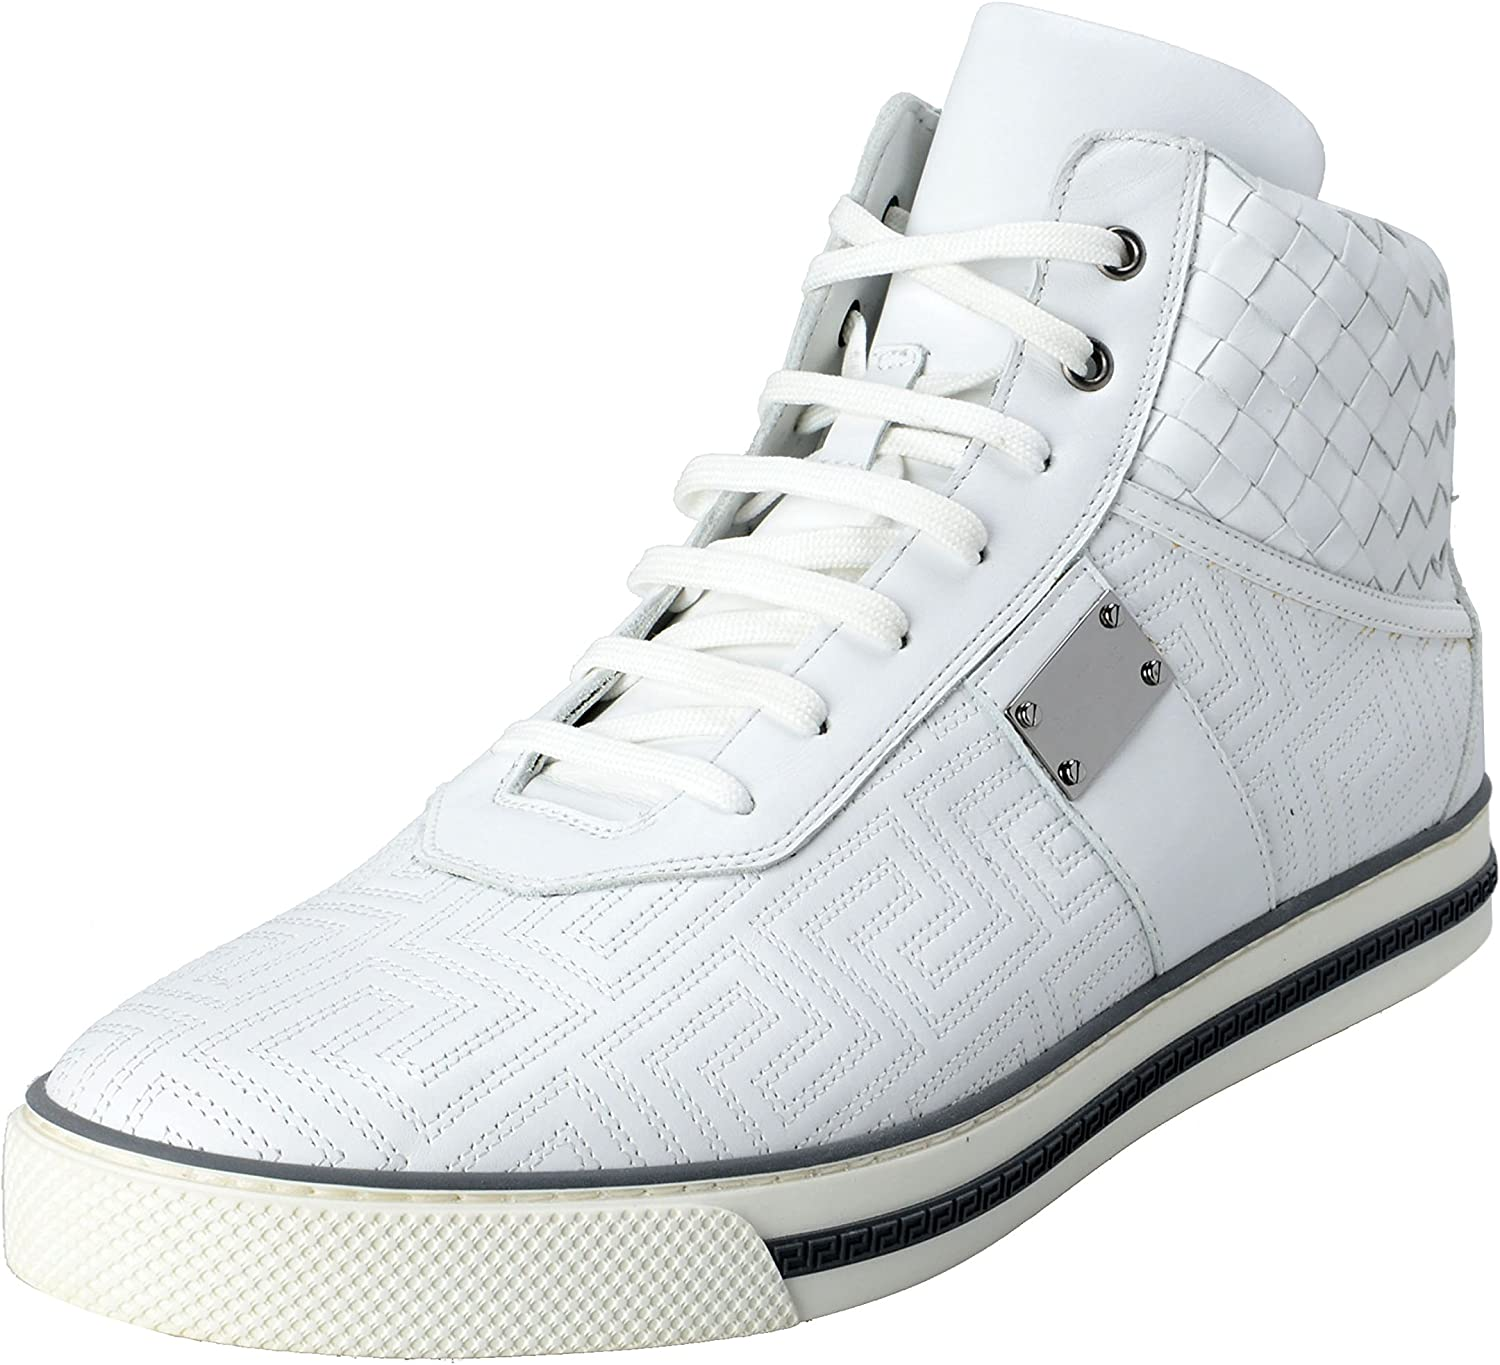 Leather Hi Top Sneakers Shoes